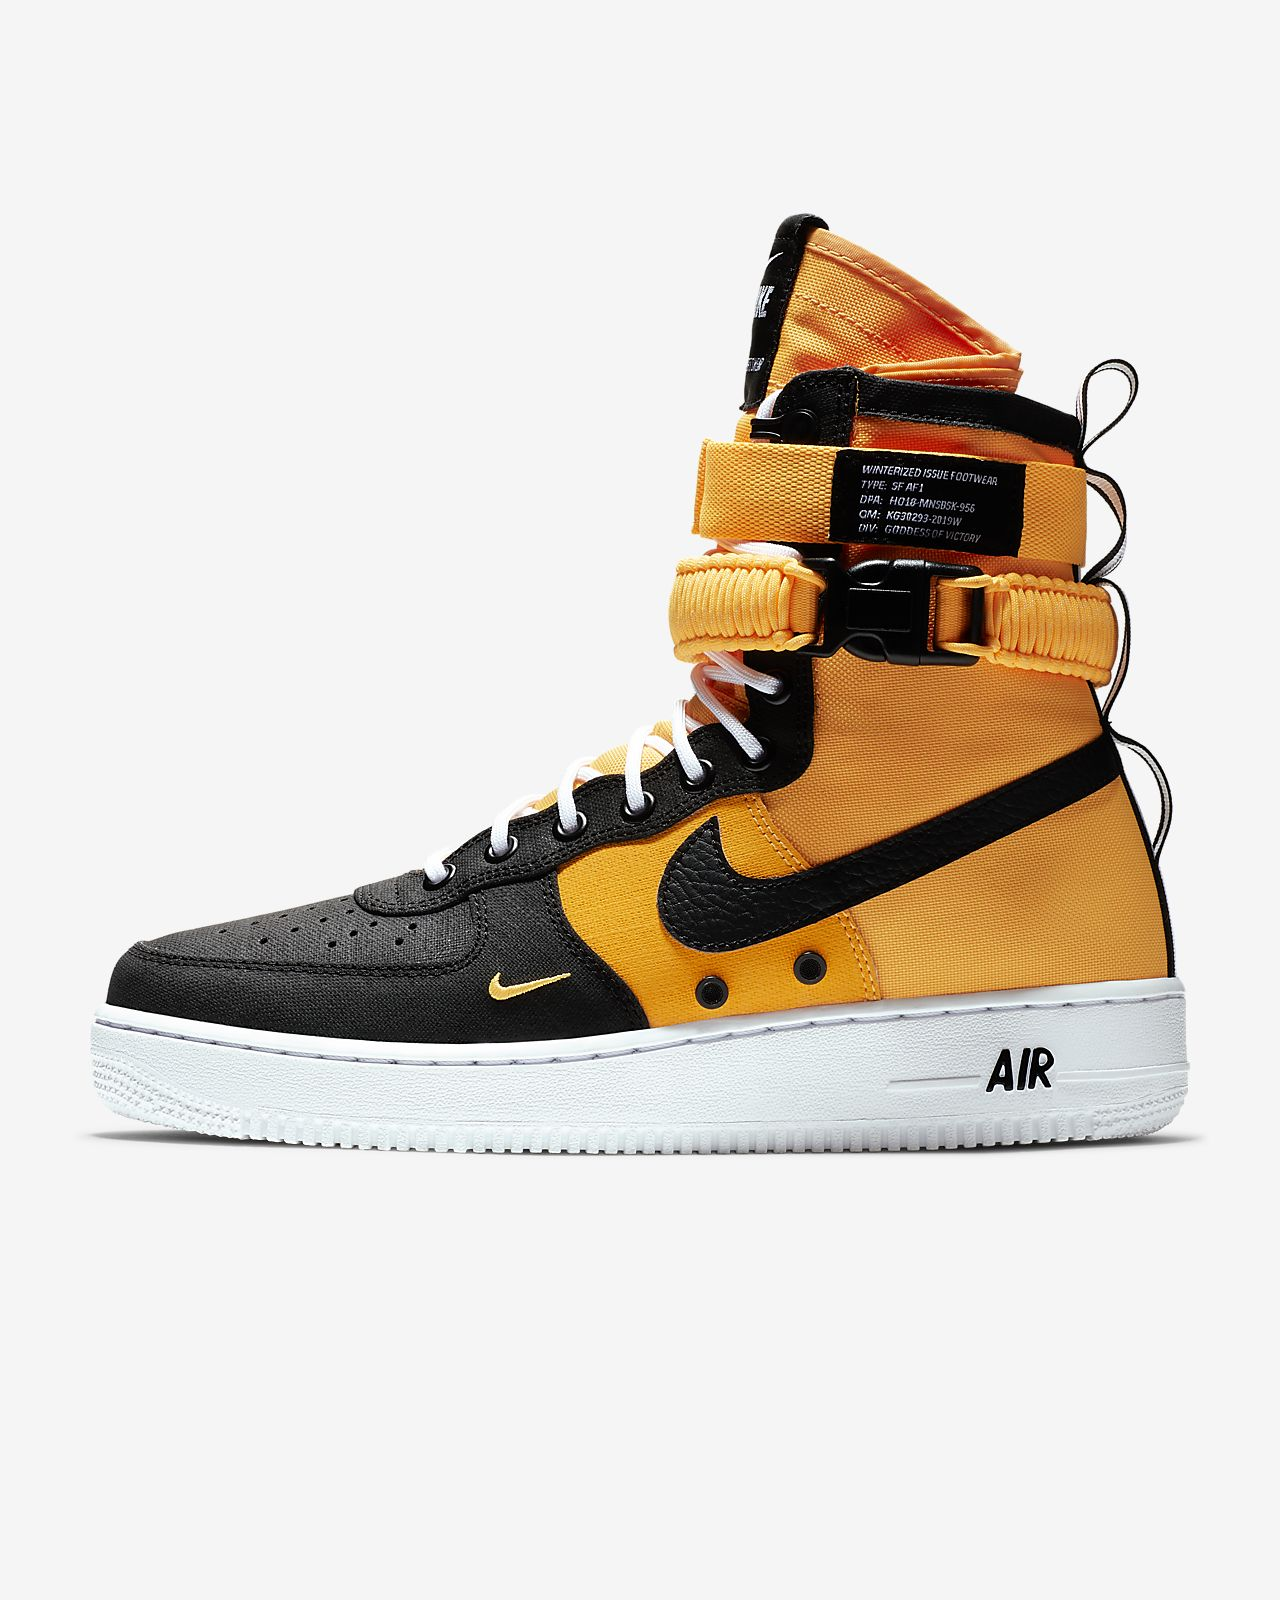 best authentic 1cf1a 87efa Low Resolution Nike SF Air Force 1 Men s Boot Nike SF Air Force 1 Men s Boot